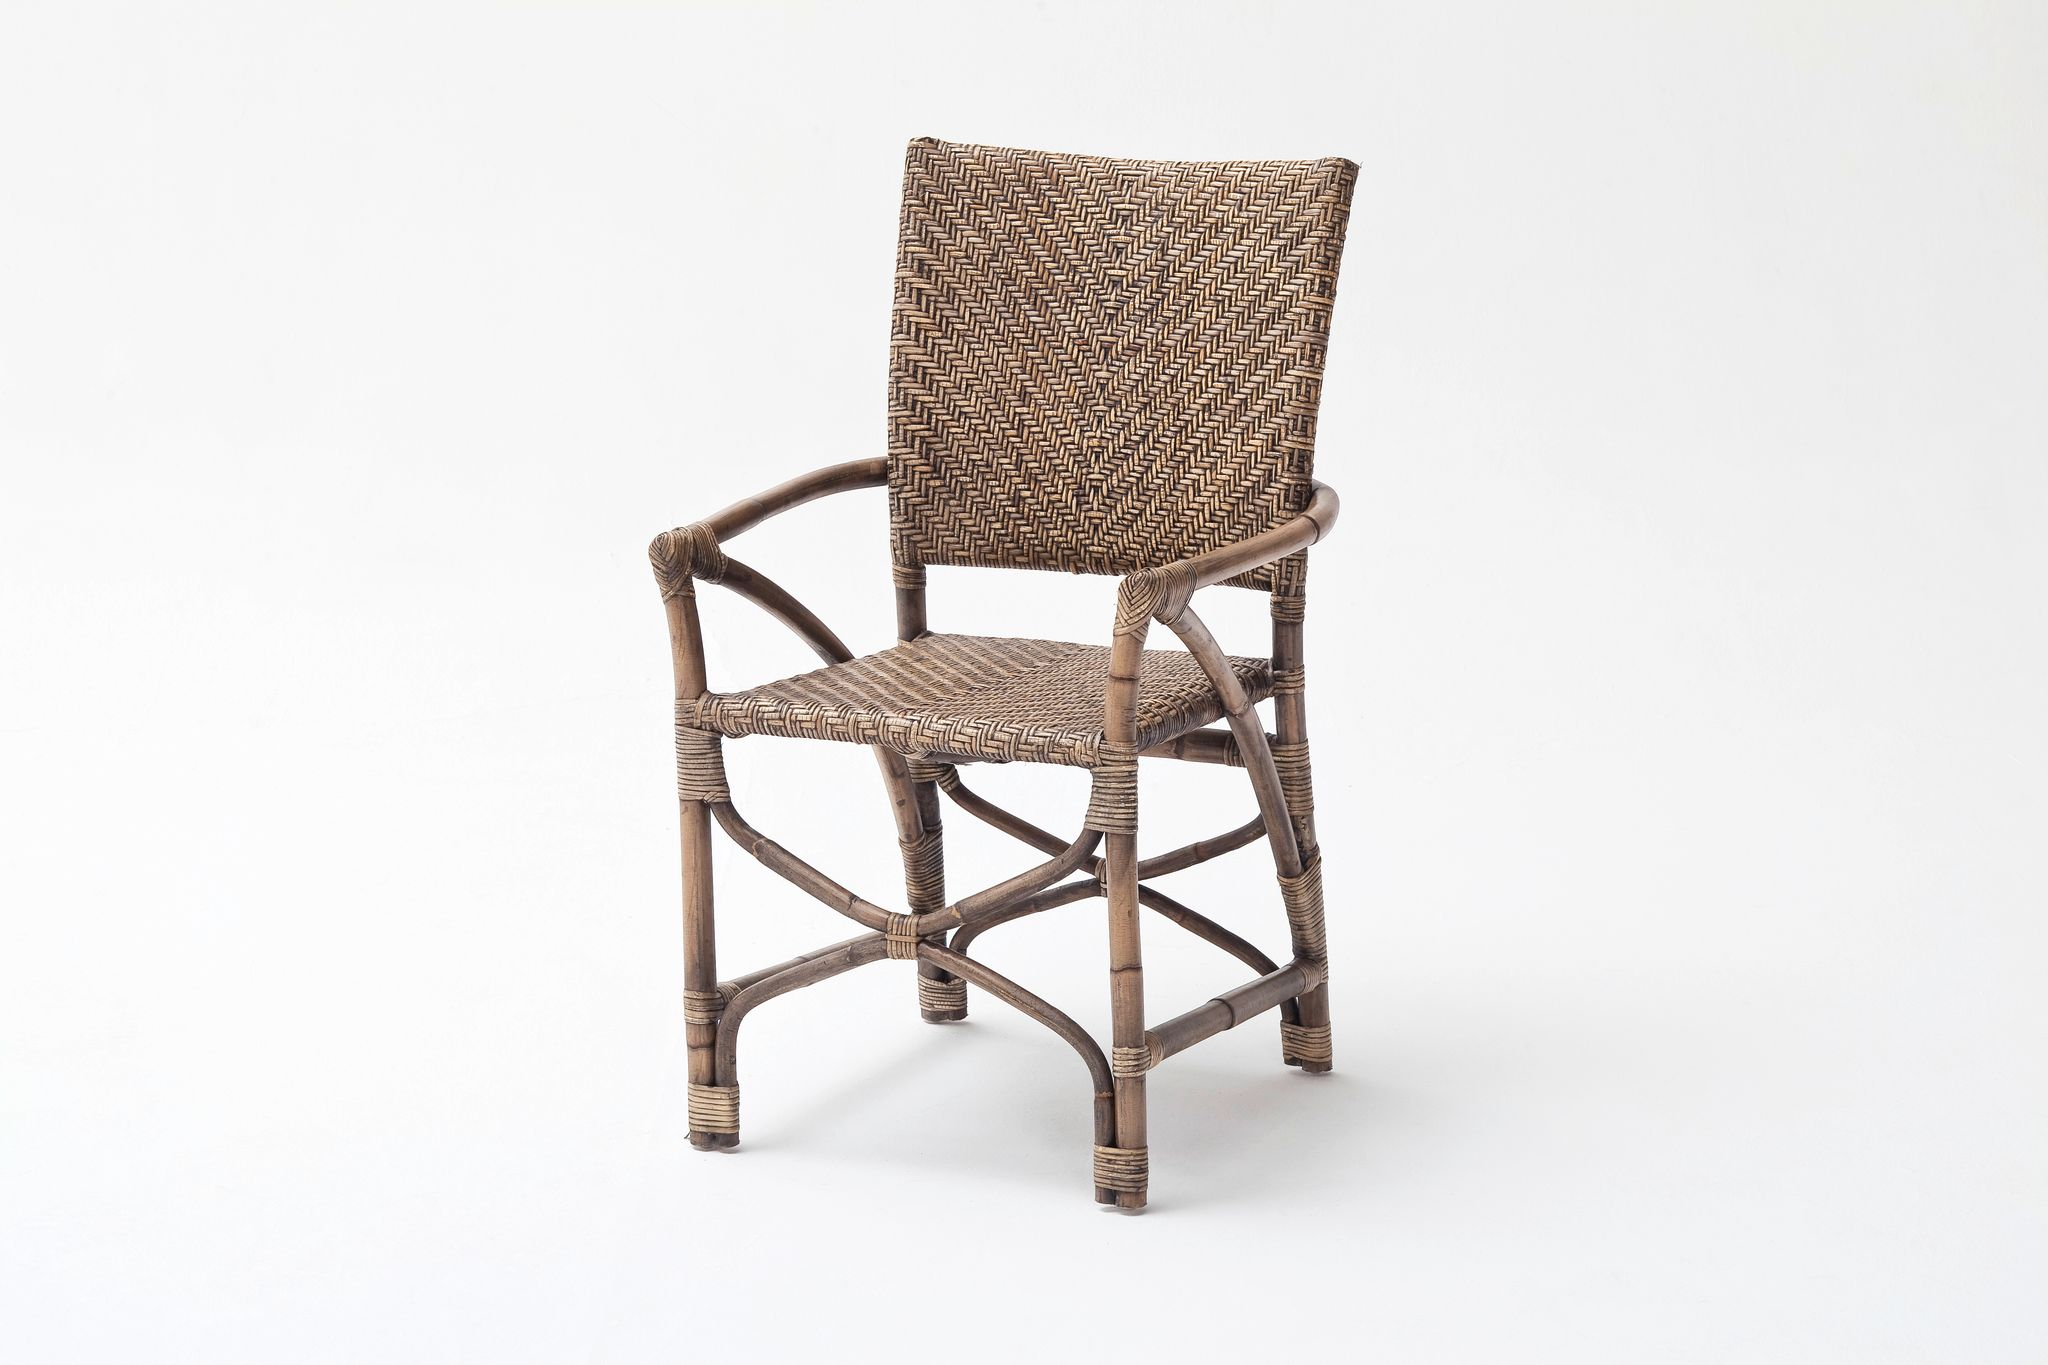 Countess Chair – 2 units in 1 pack